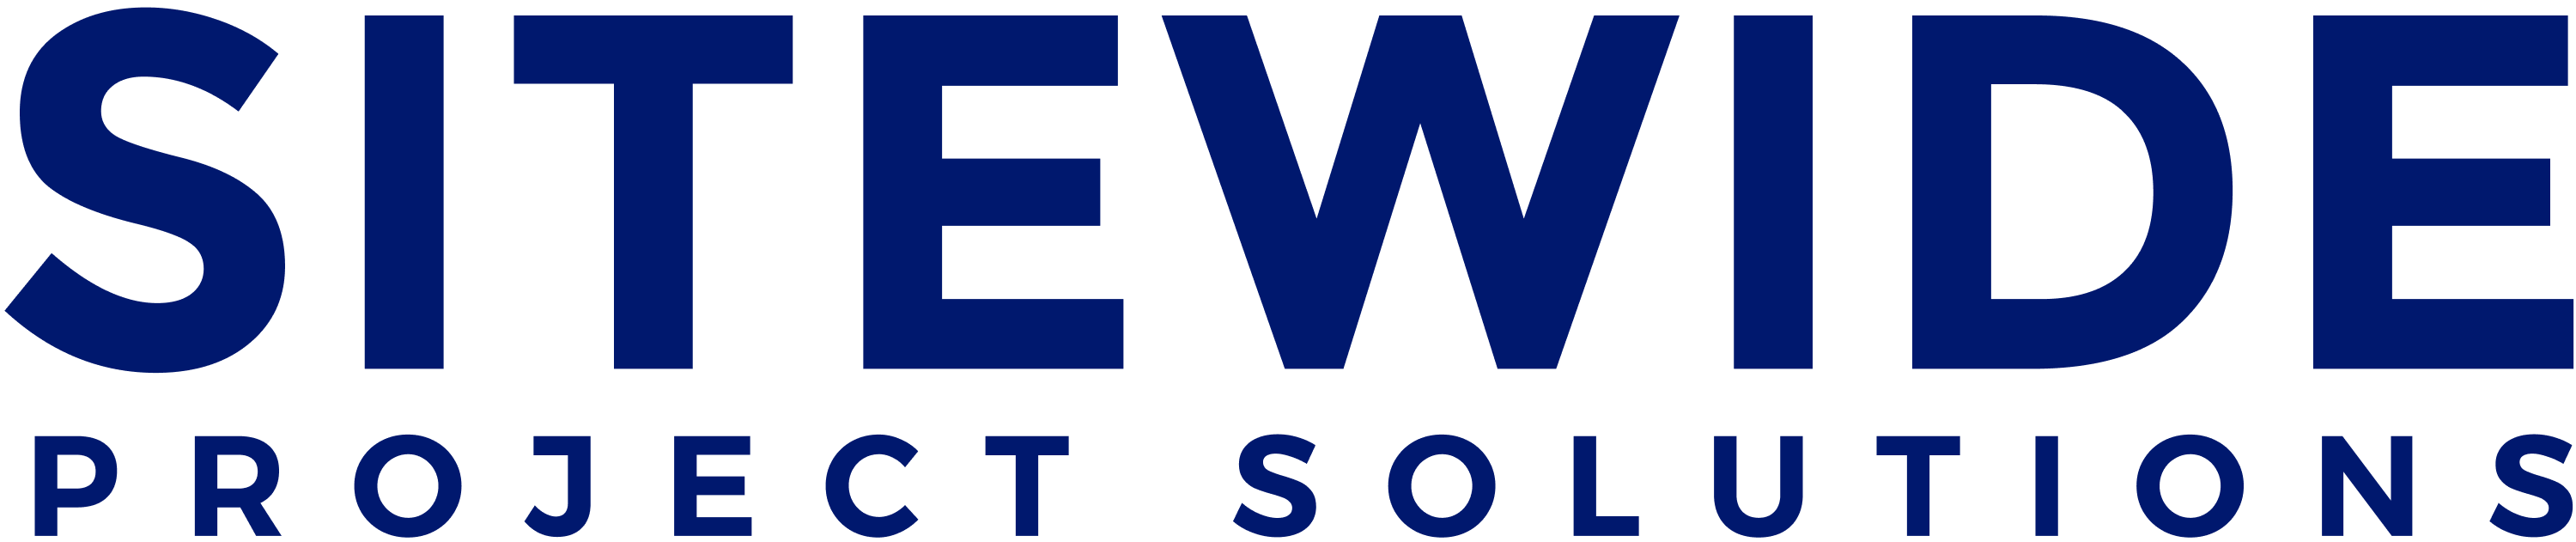 Sitewide Project Solutions Logo | Engineering Support Specialists